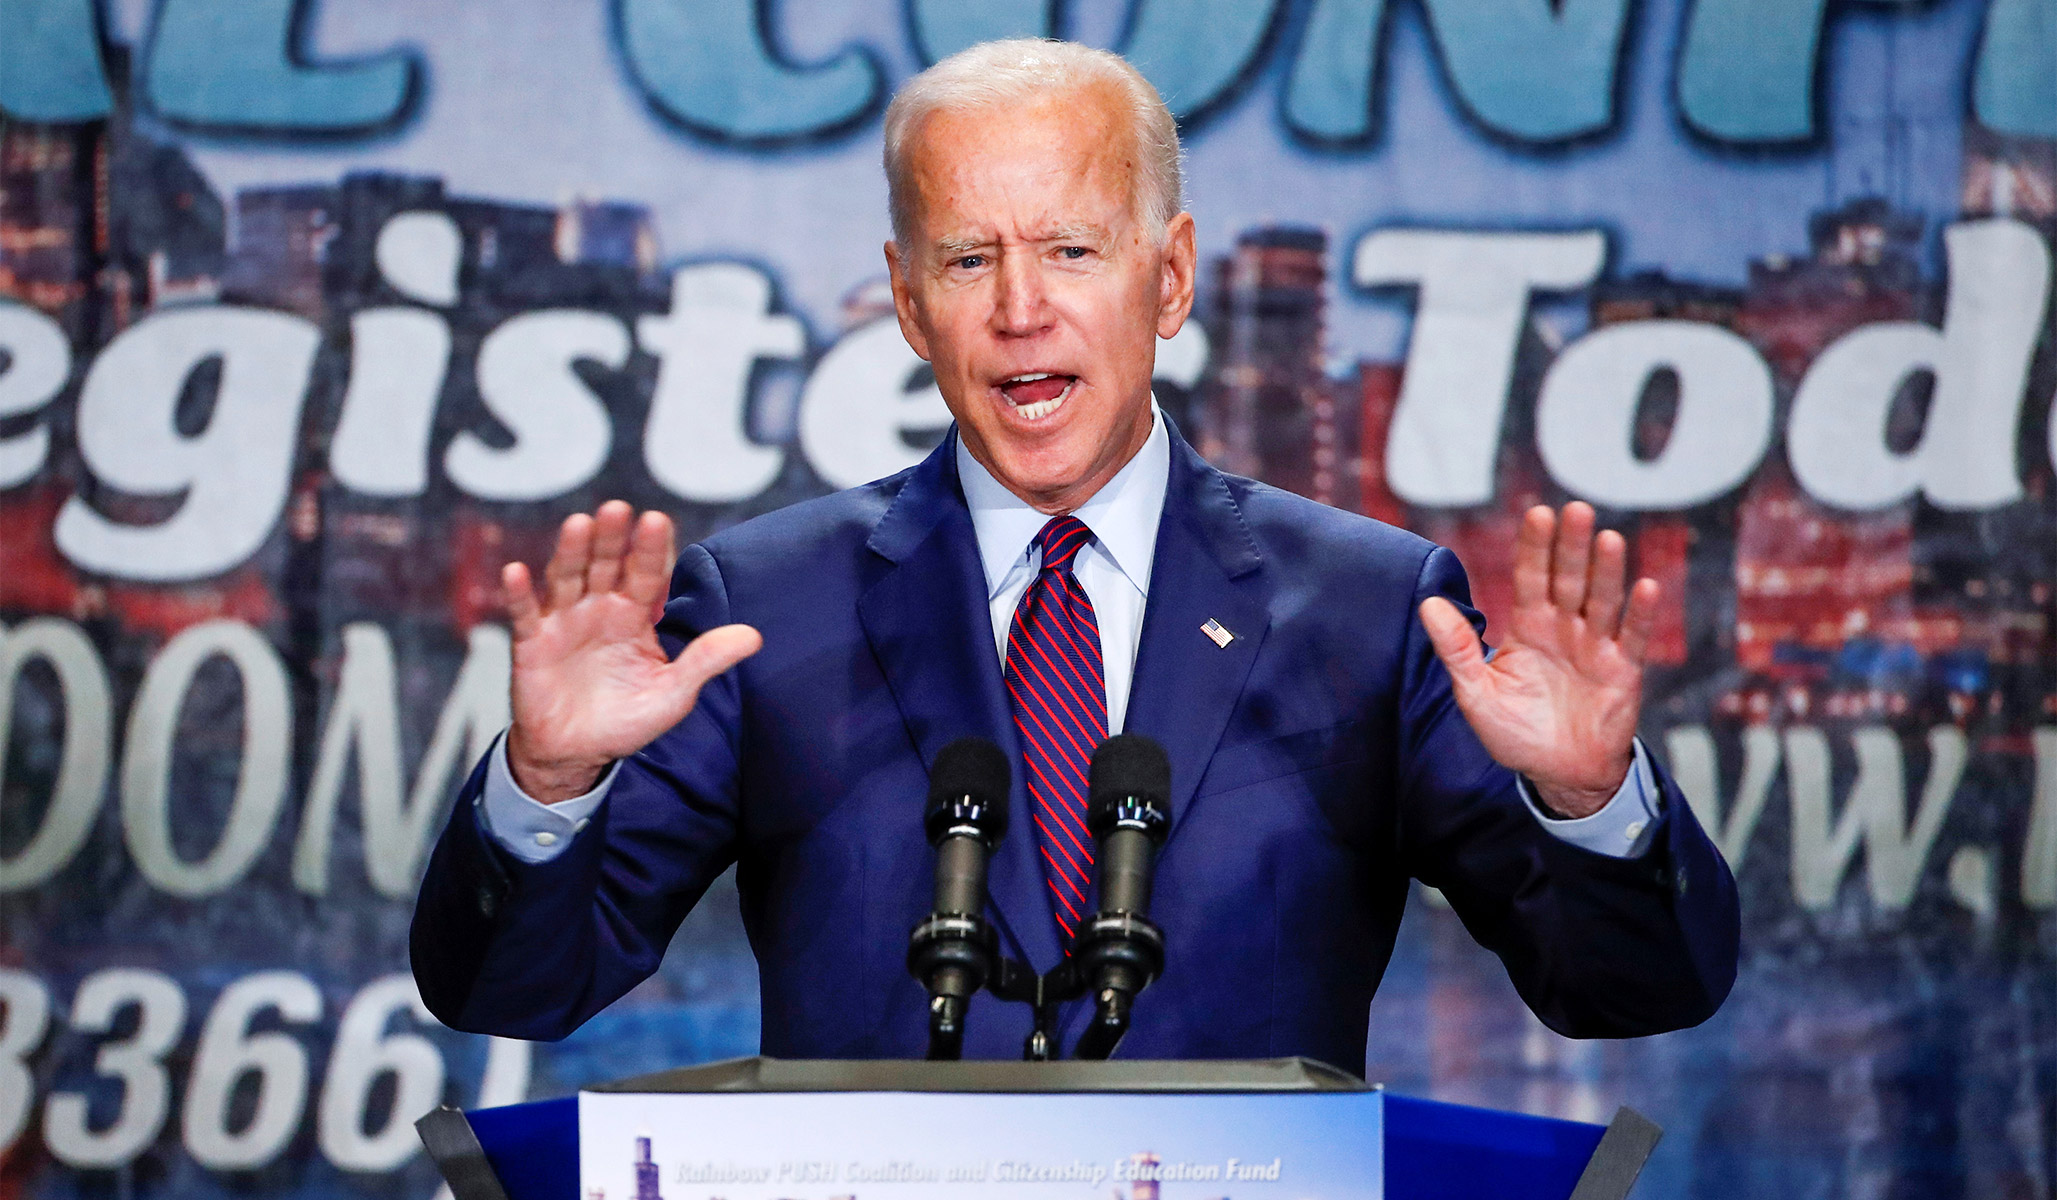 Joe Biden and the Great Awokening